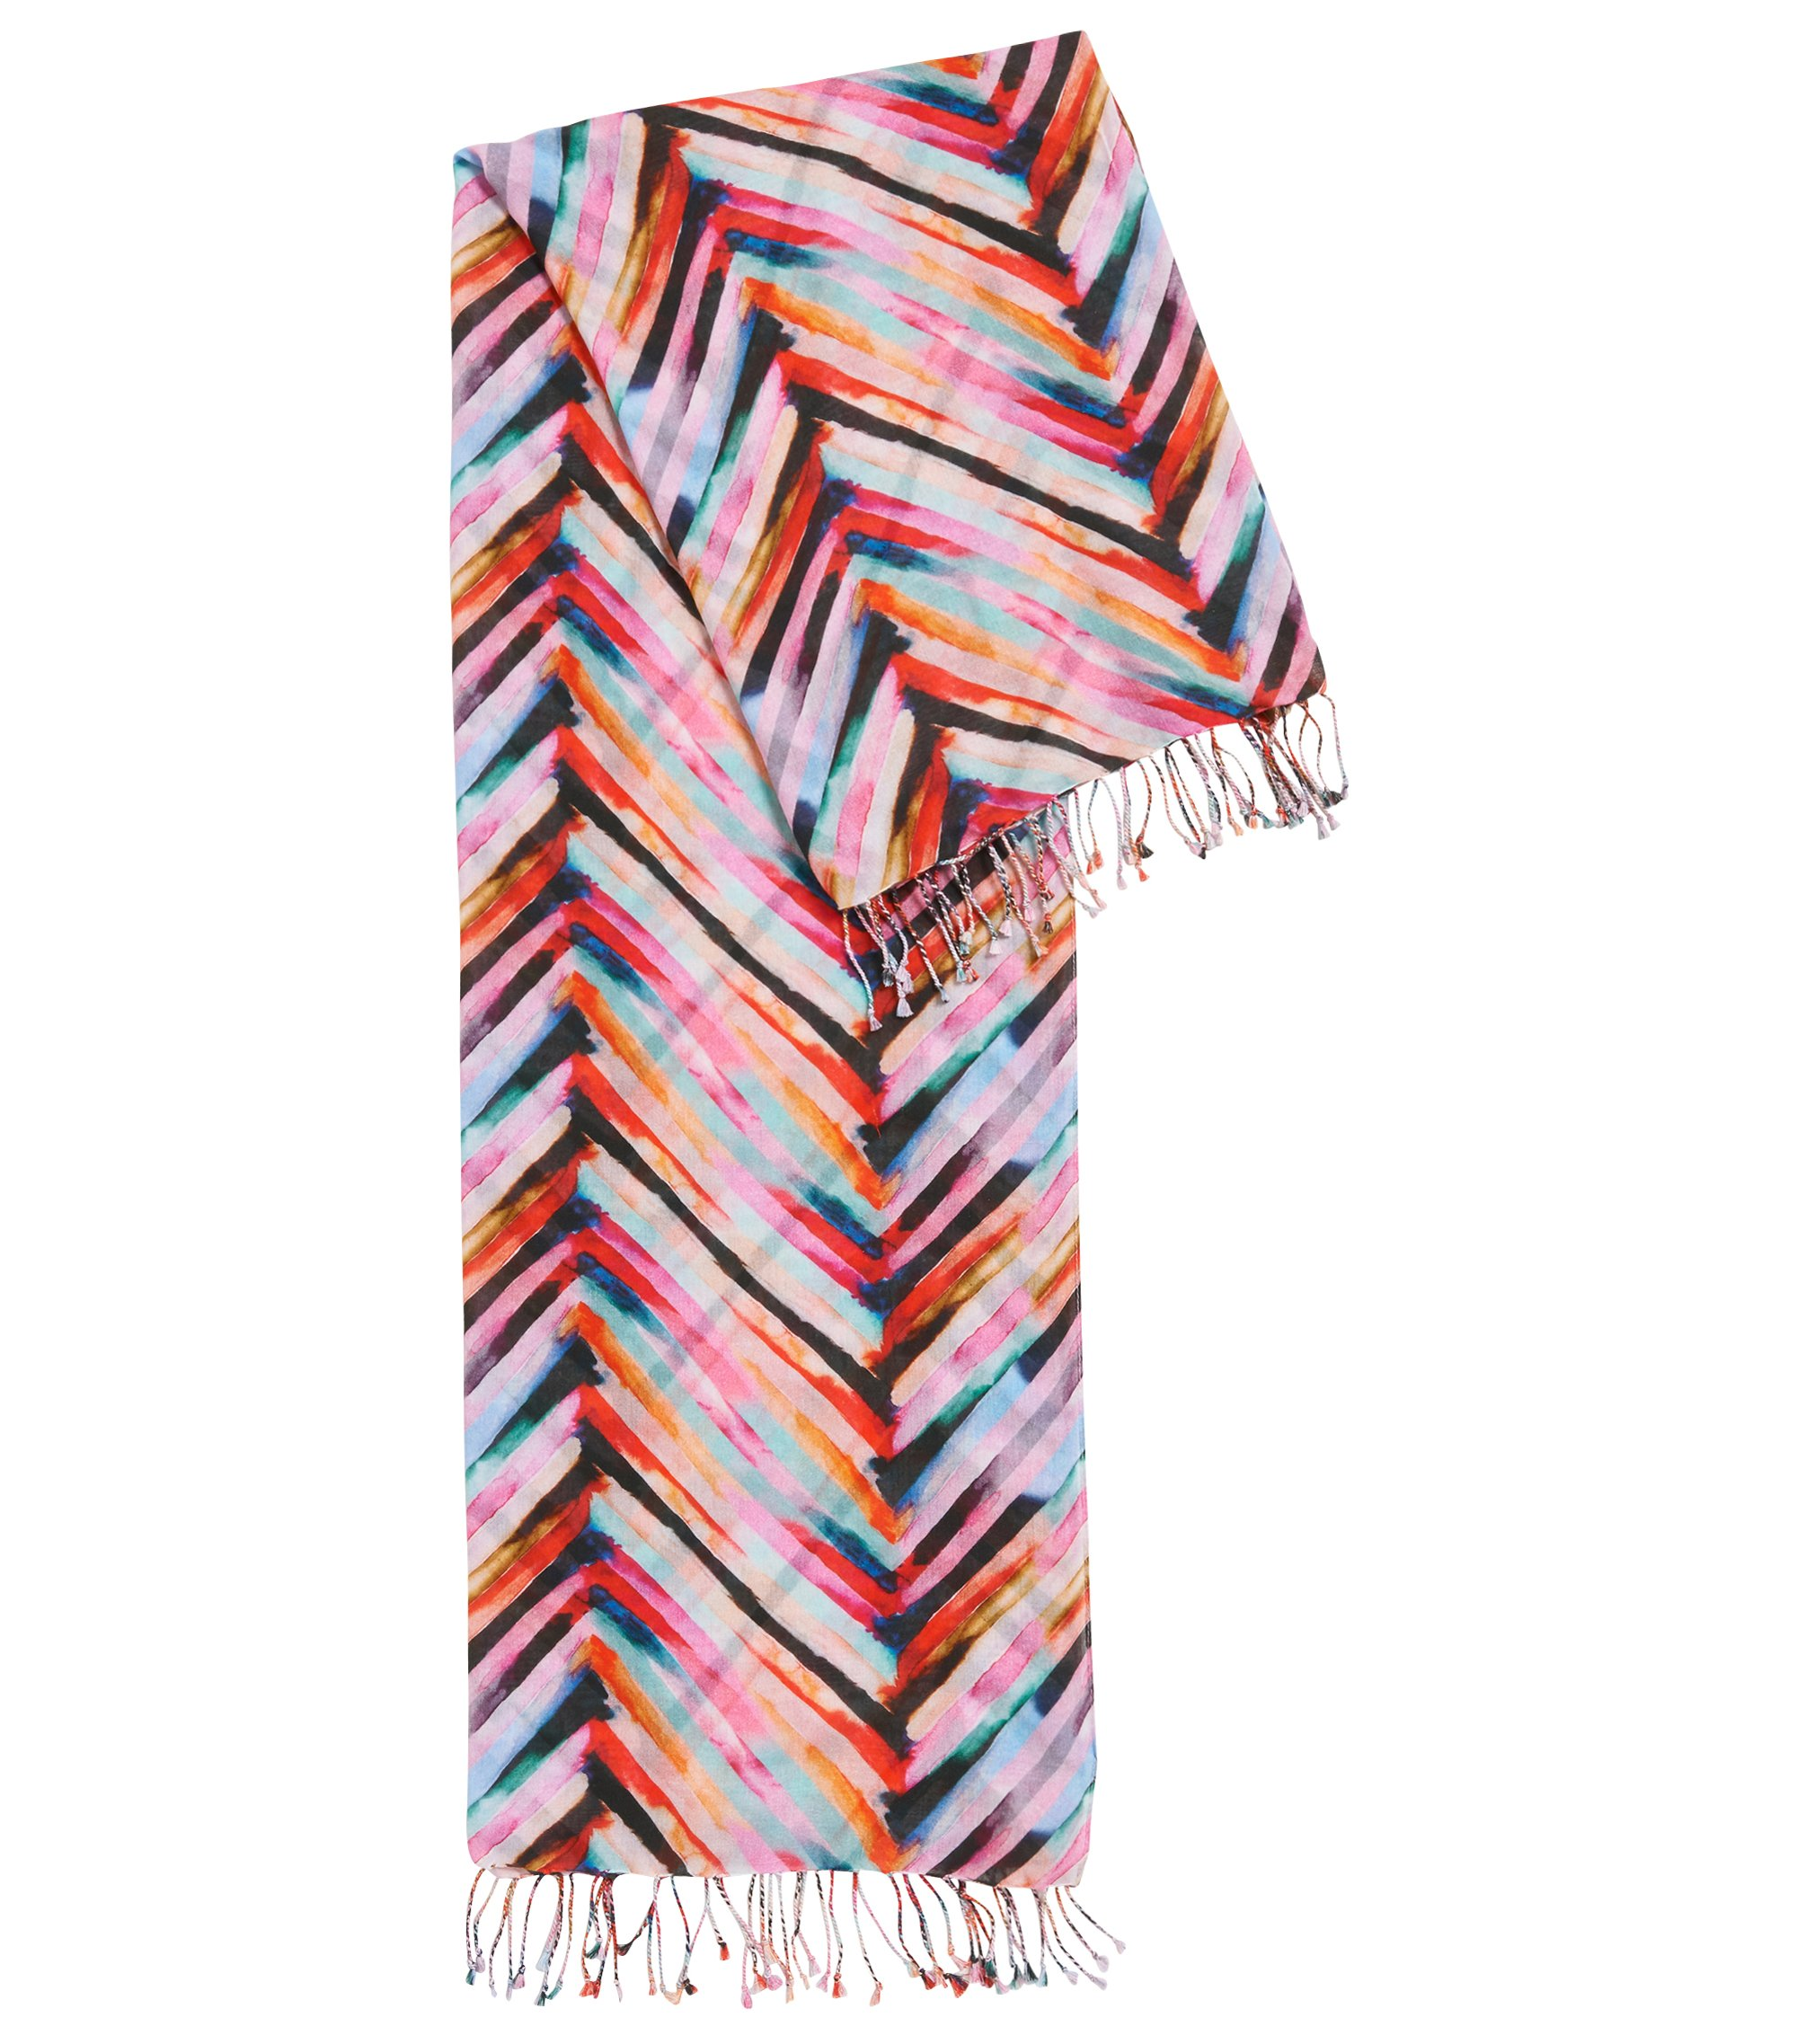 Multi-coloured striped scarf in a lightweight cotton blend, Patterned